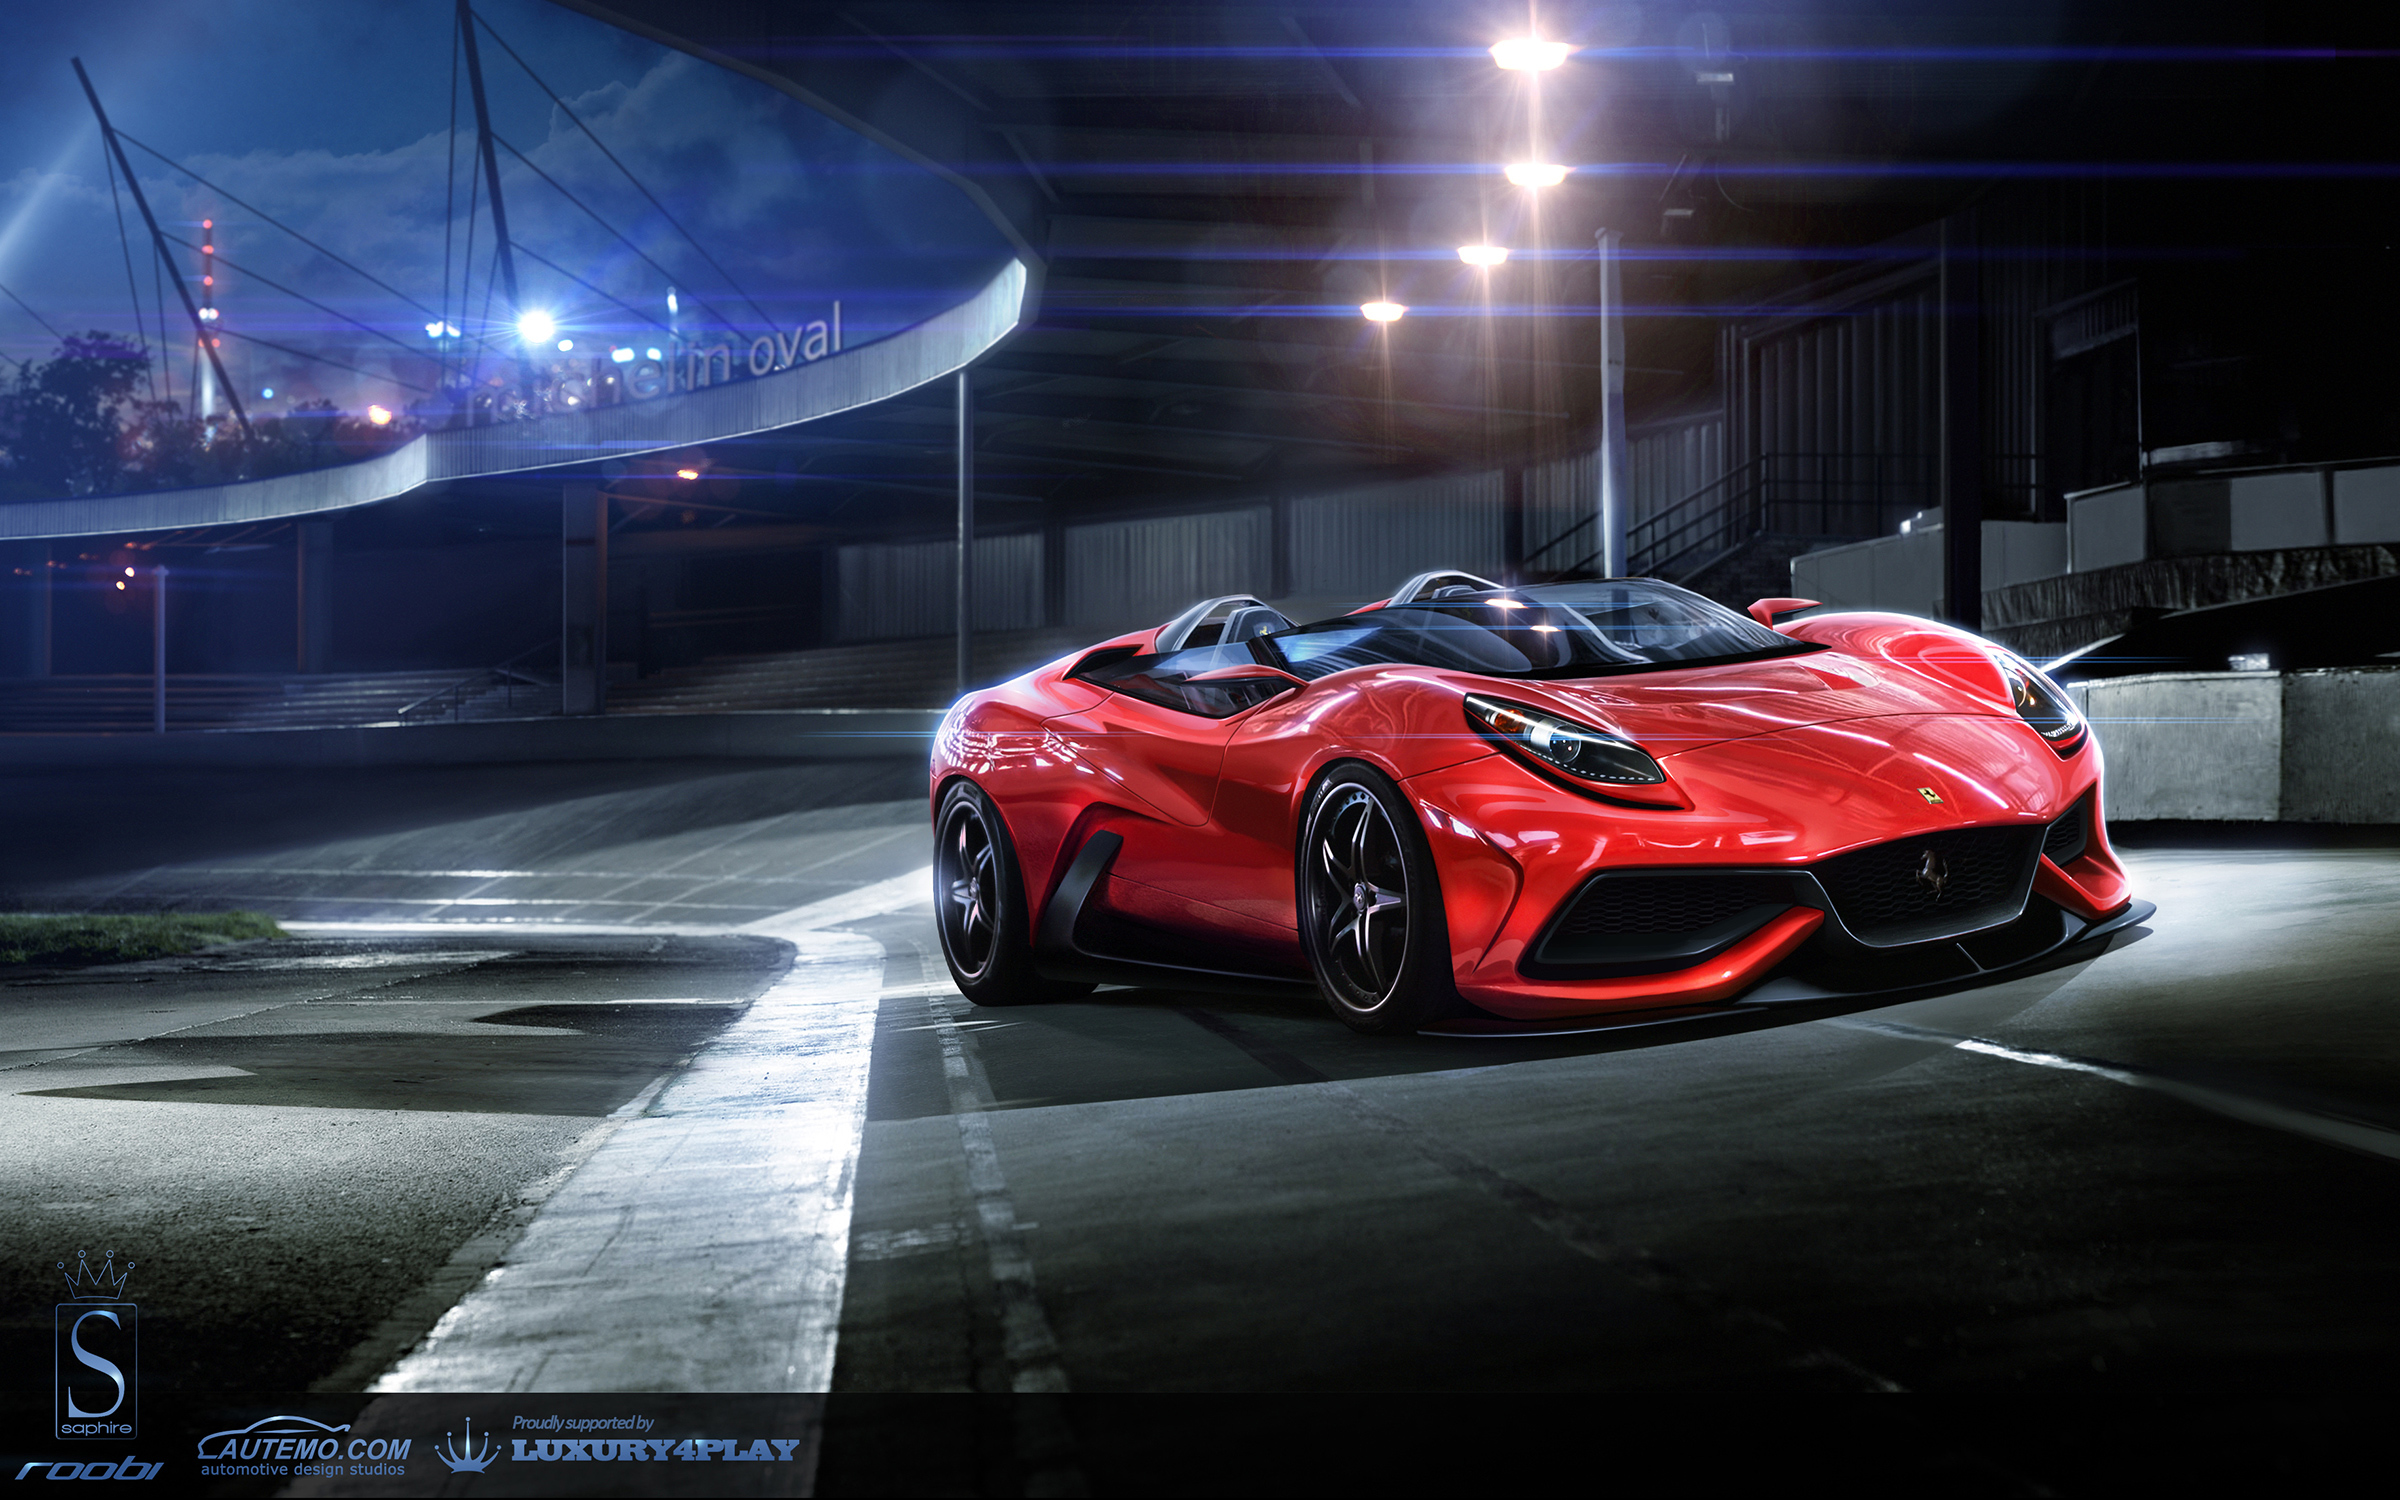 ferrari-f-berlinetta-wallpaper-wp500305